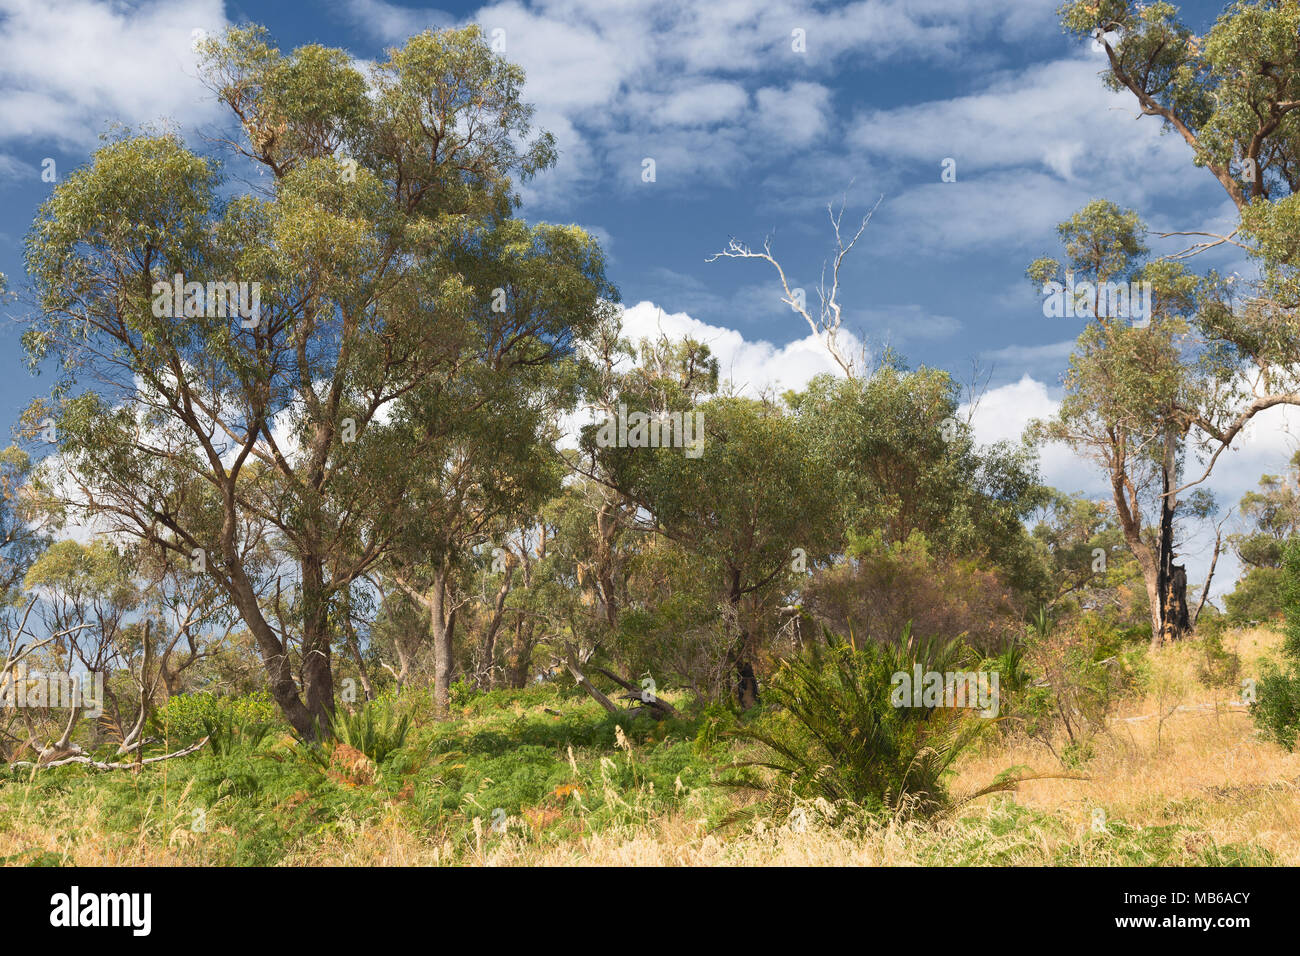 Bush-land beside Lake Joondalup, in the Yellagonga Regional Park, Perth, Western Australia - Stock Image